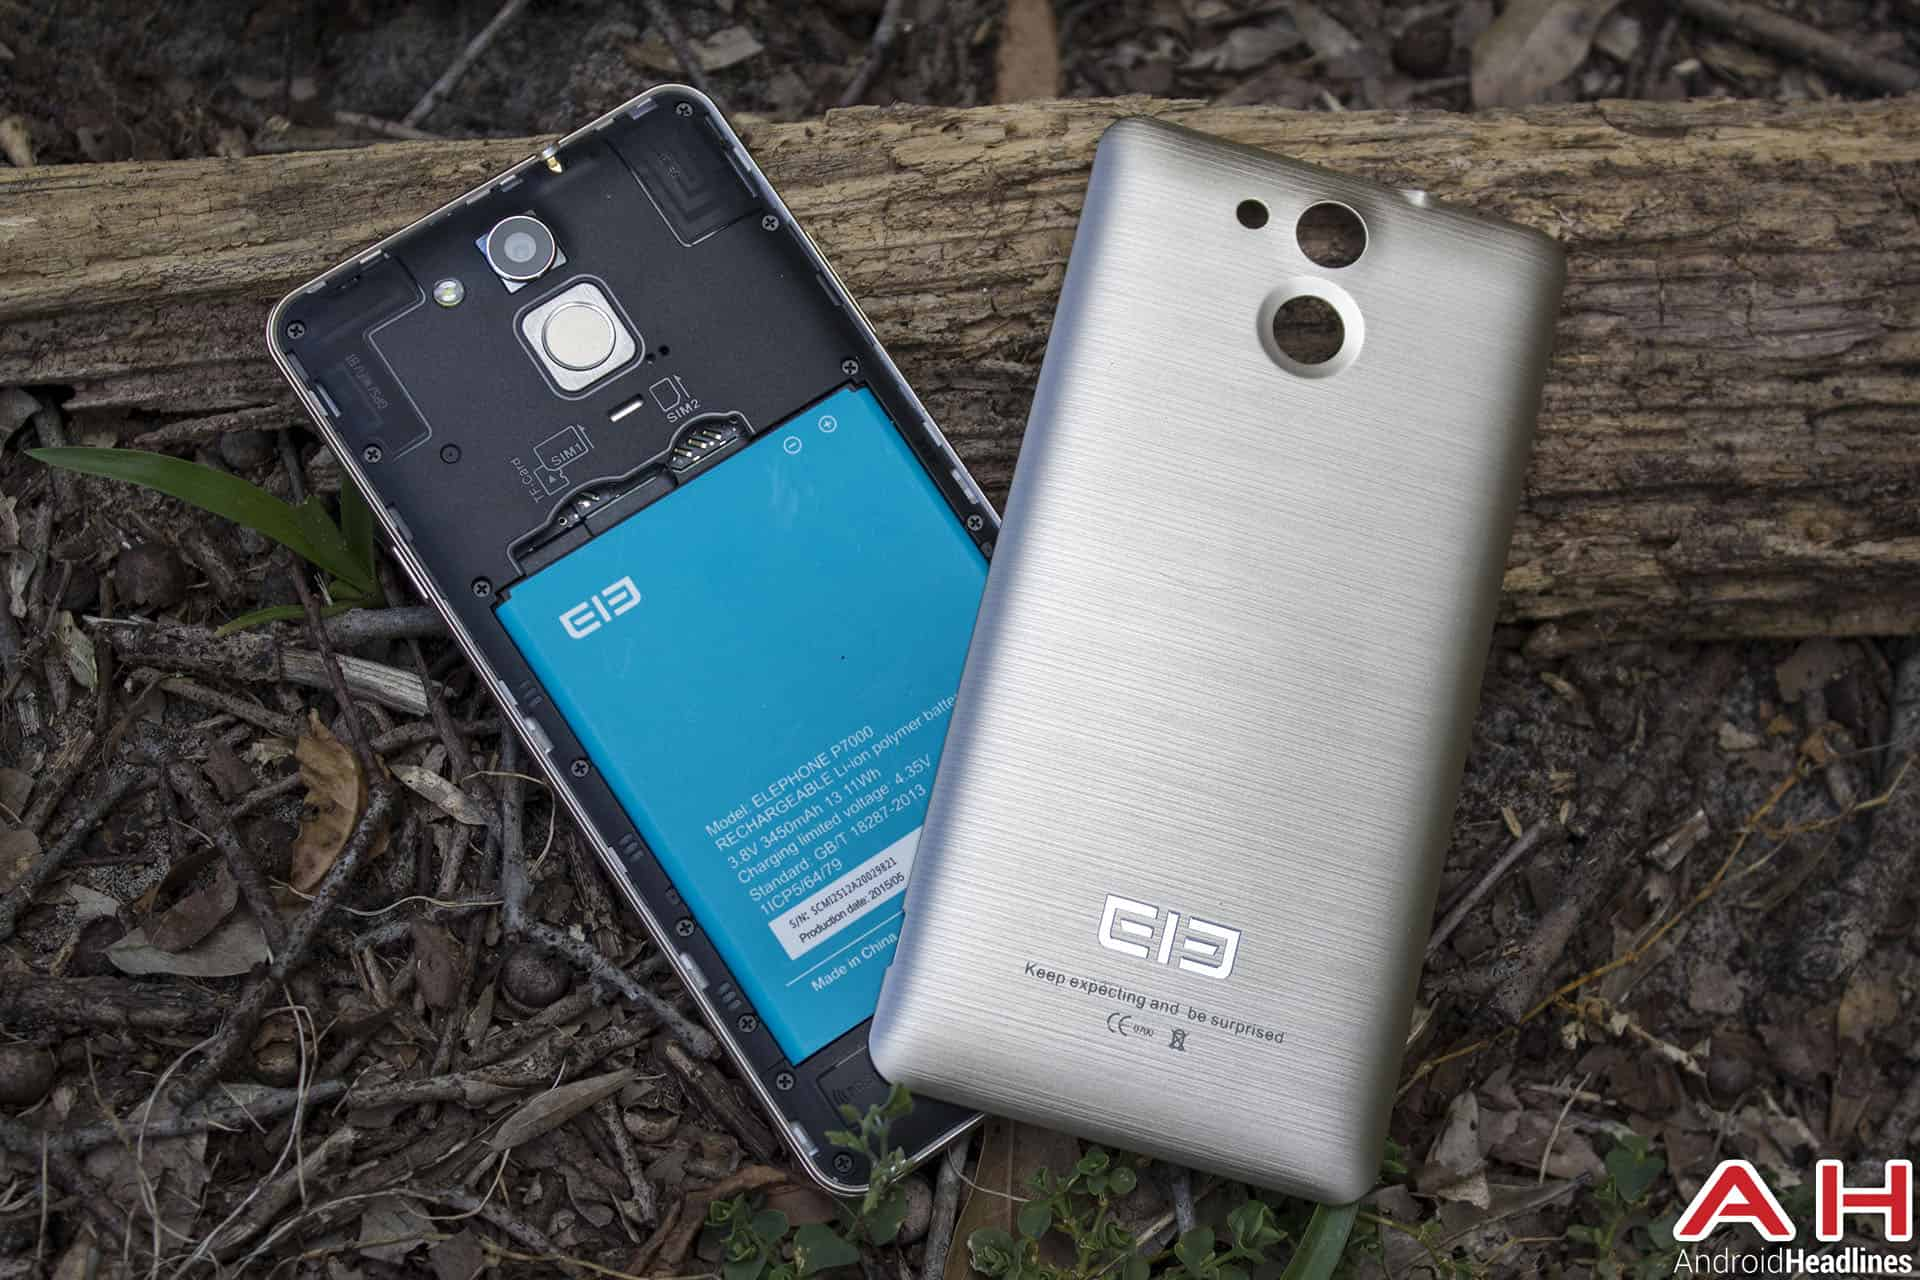 Elephone-P7000-Review-AH-battery